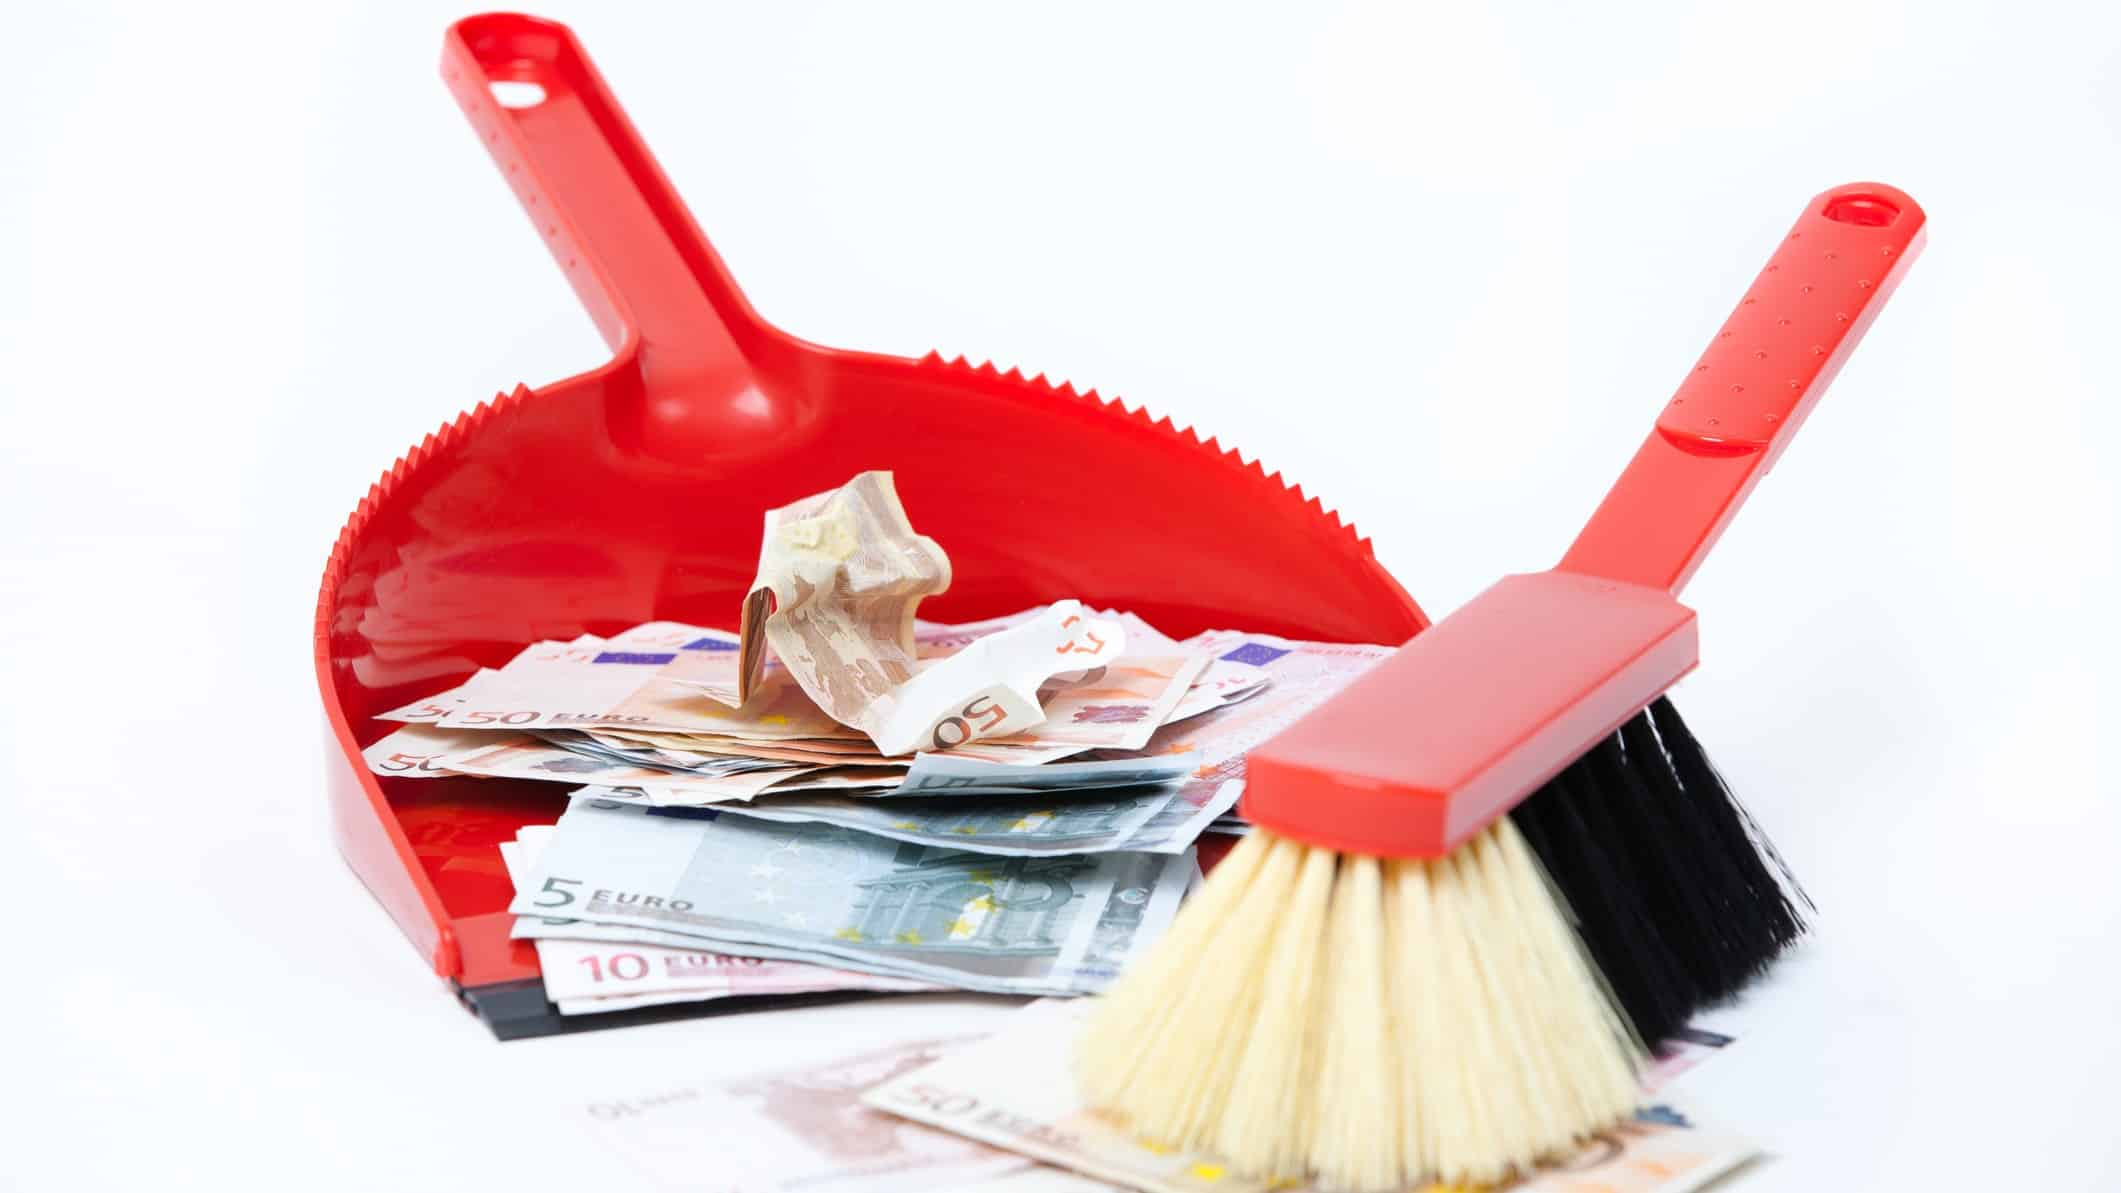 falling waste ASX share price represented by broom sweeping cash into dust pan